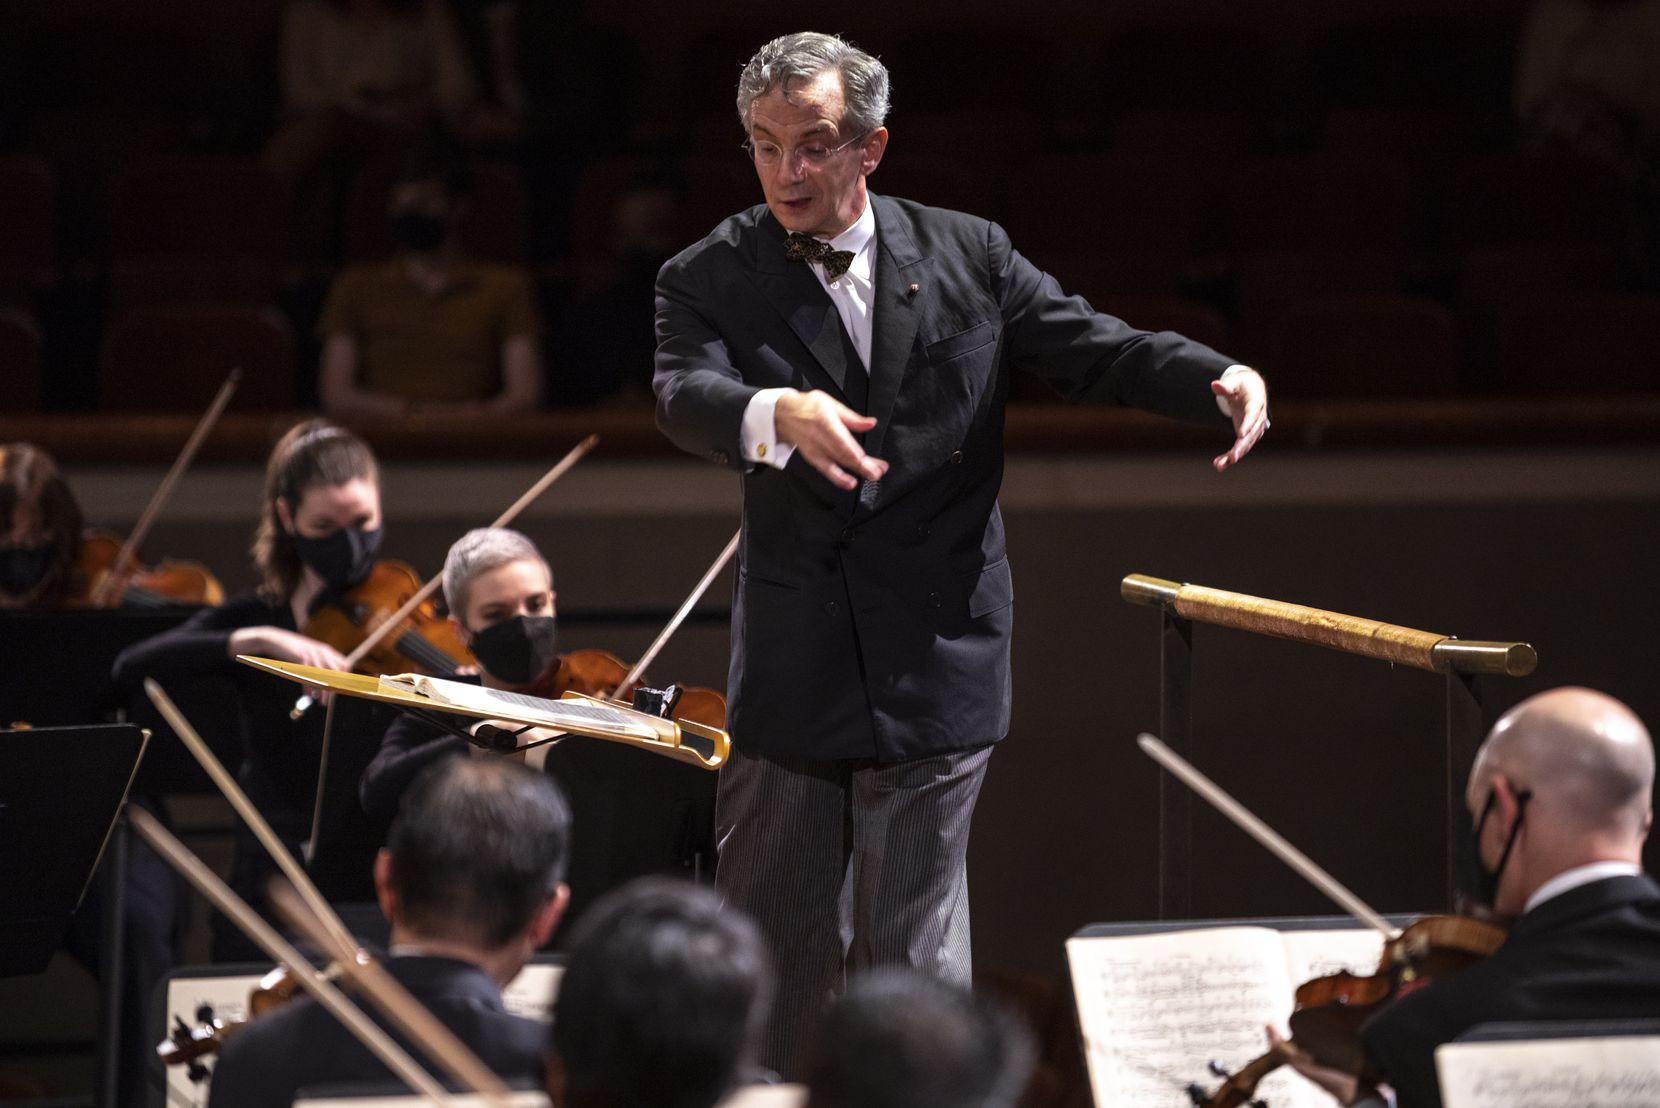 Dallas Symphony Orchestra music director Fabio Luisi conducts members of the DSO and the Metropolitan Opera Orchestra in Mahler's Symphony No. 1 in D Major Friday evening. The special concert benefited the MET Orchestra Musicians Fund and the Dallas-Fort Worth Musicians COVID-19 Relief Fund.